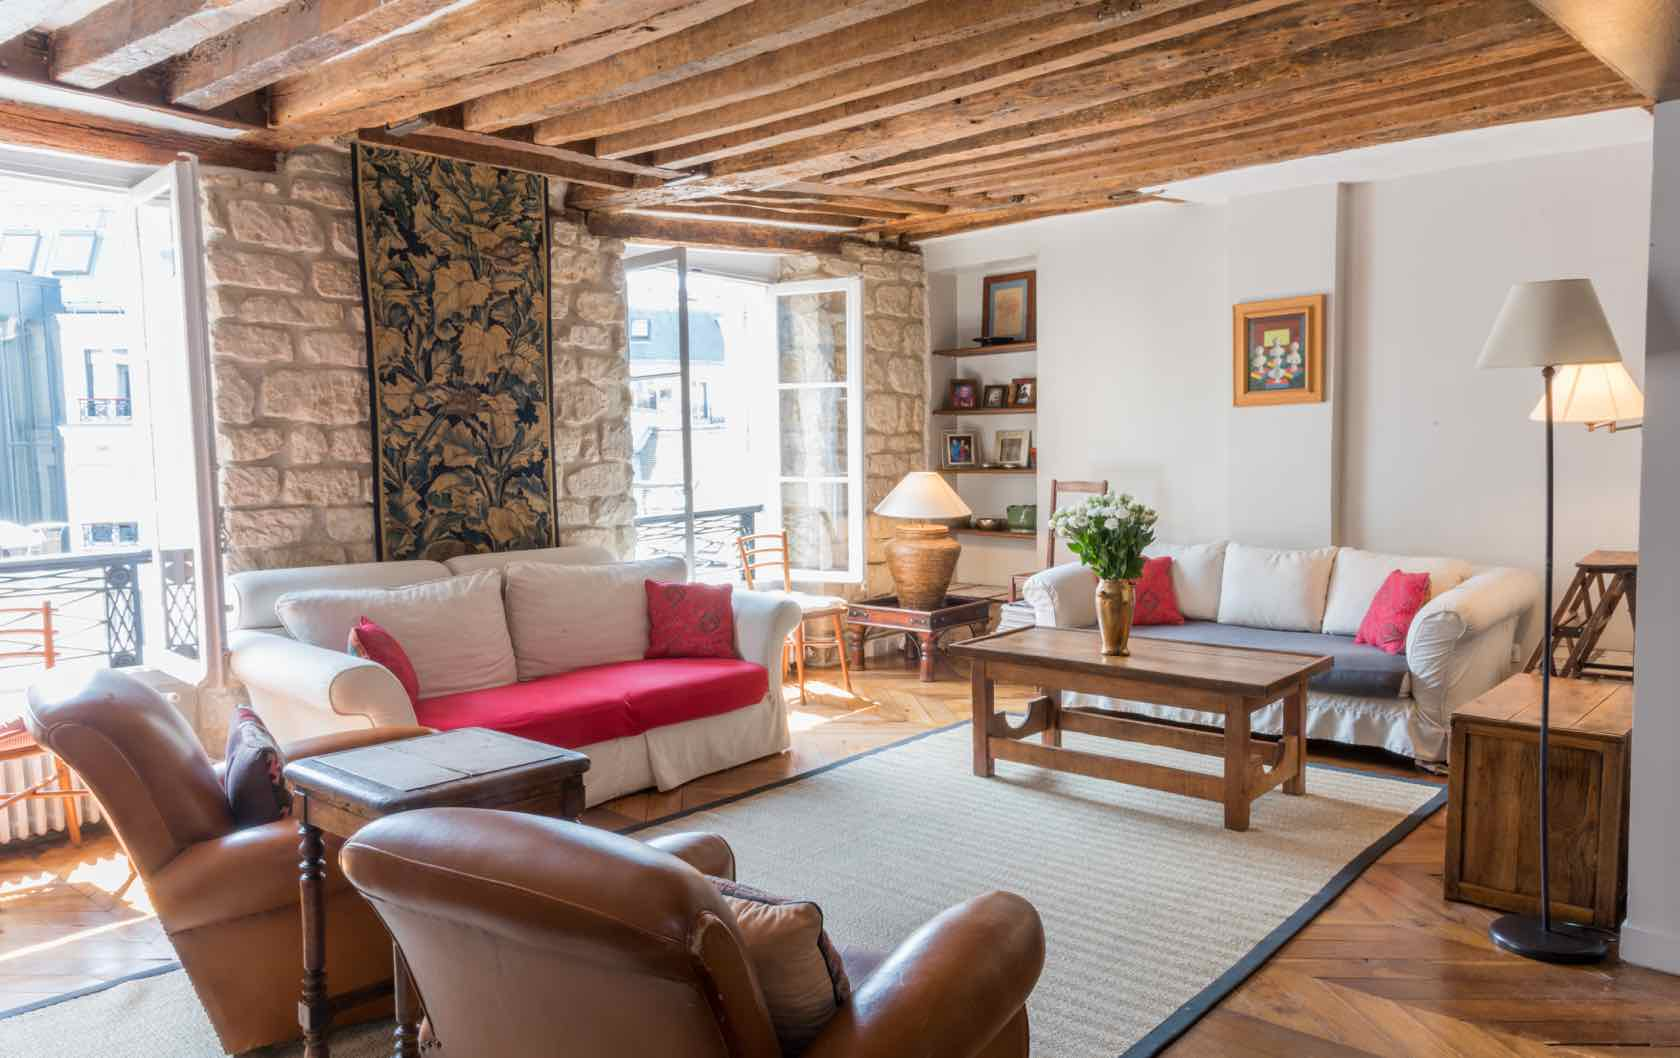 The Dolcetto Apartment – Old-World Comfort in Saint-Germain-des-Près